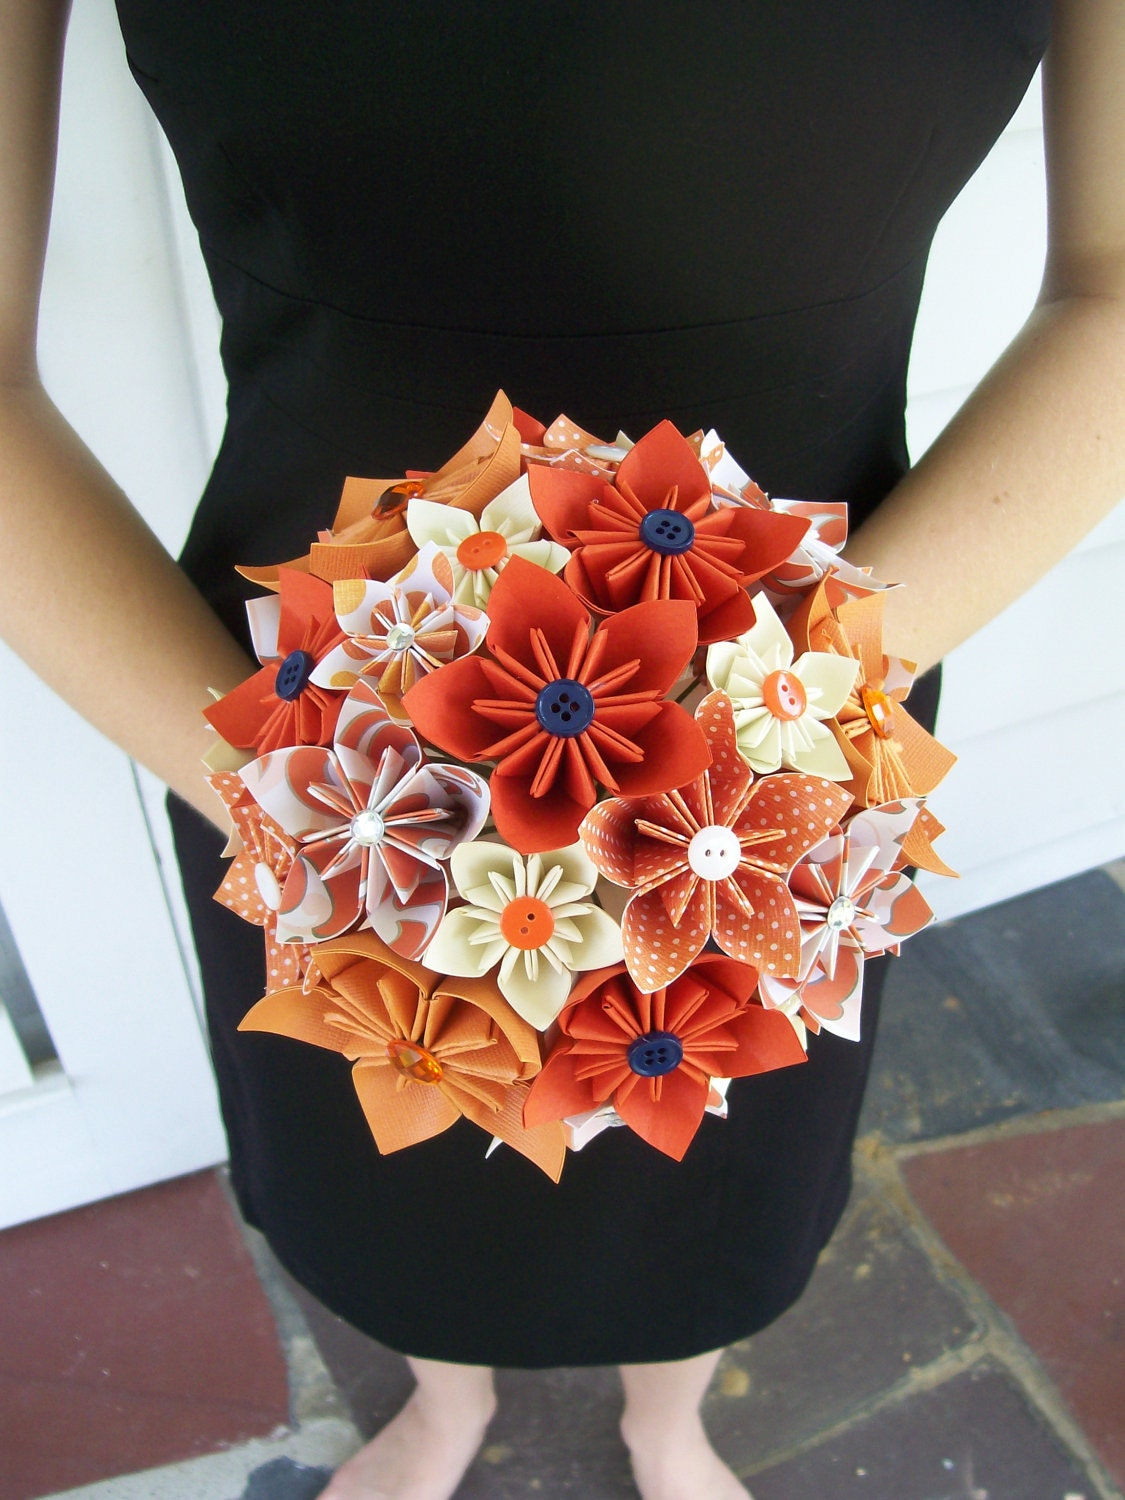 Bridal Bouquet Paper Flowers : Fall wedding paper flower bridal bouquet kusudama by